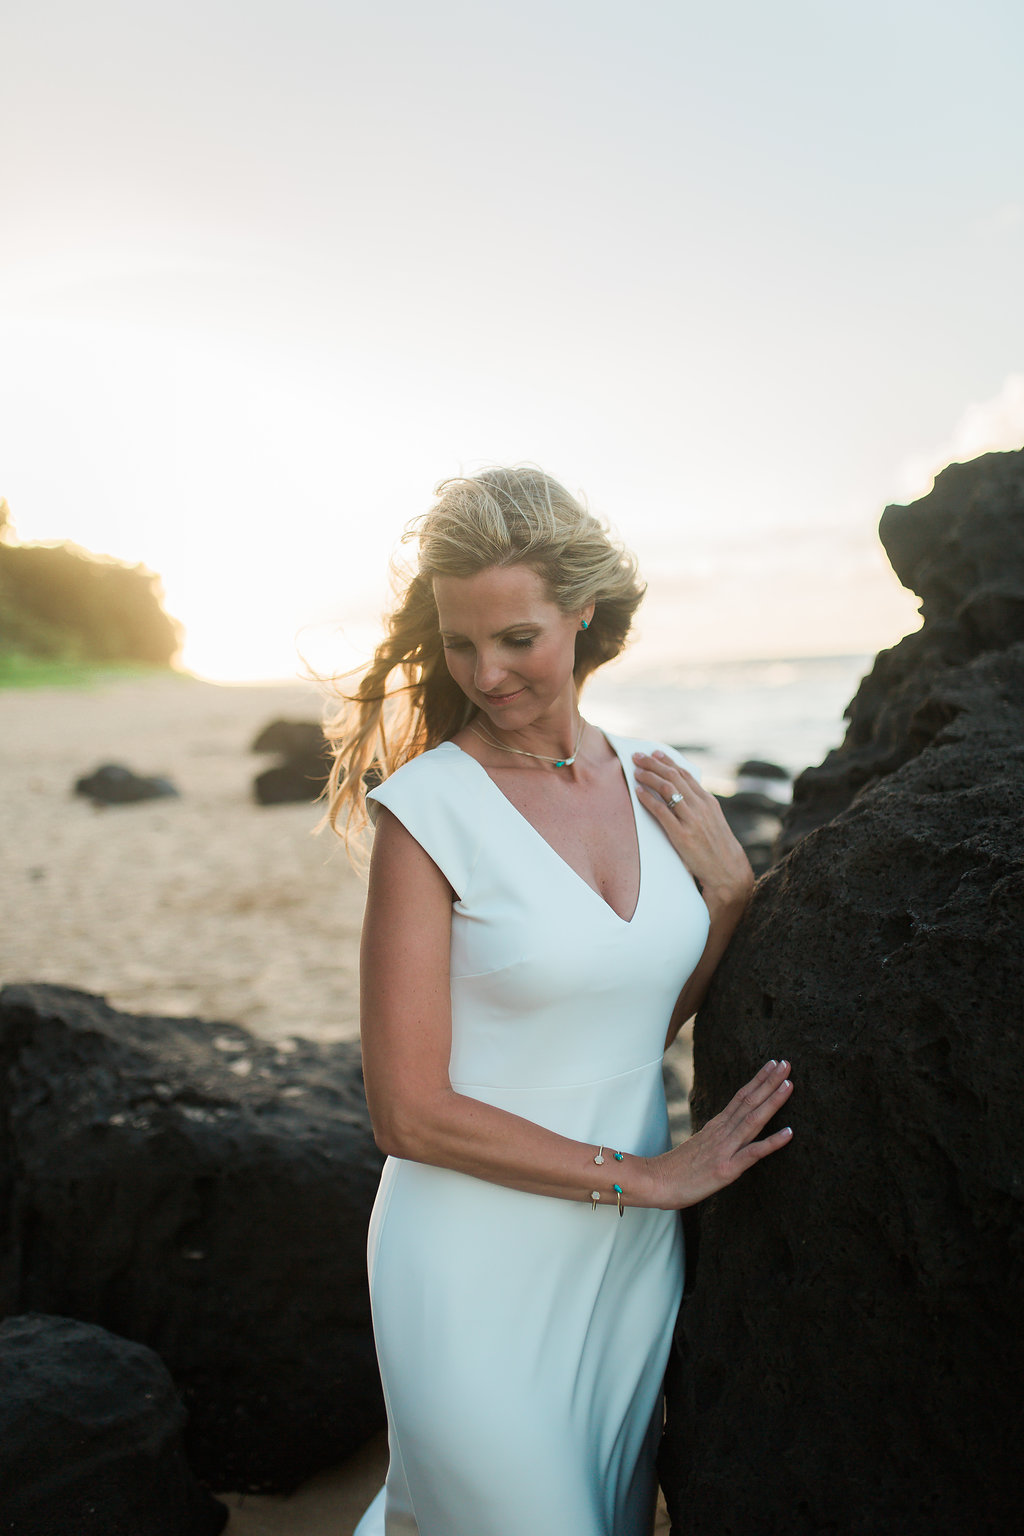 Hawaii Kauai Beach Wedding Photos -- Wedding Blog - The Overwhelmed Bride